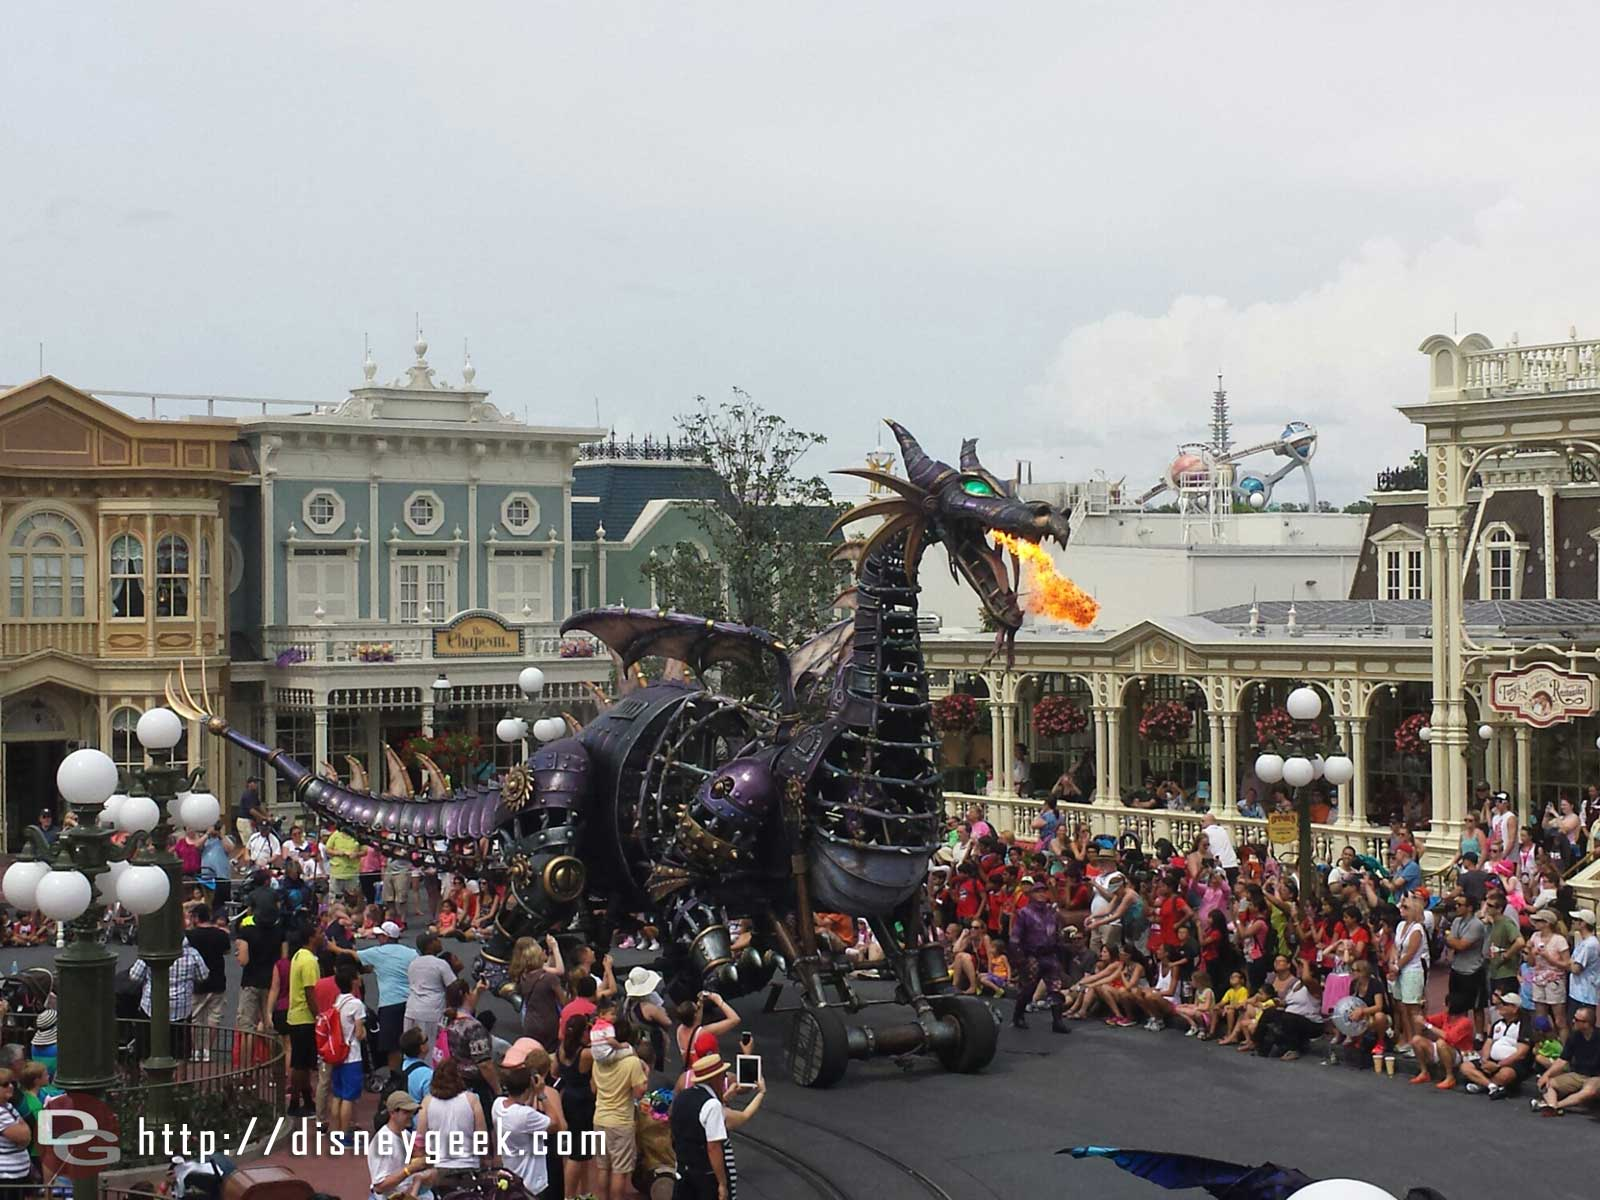 Maleficent breathing fire – Festival of Fantasy parade #WDW Magic Kingdom